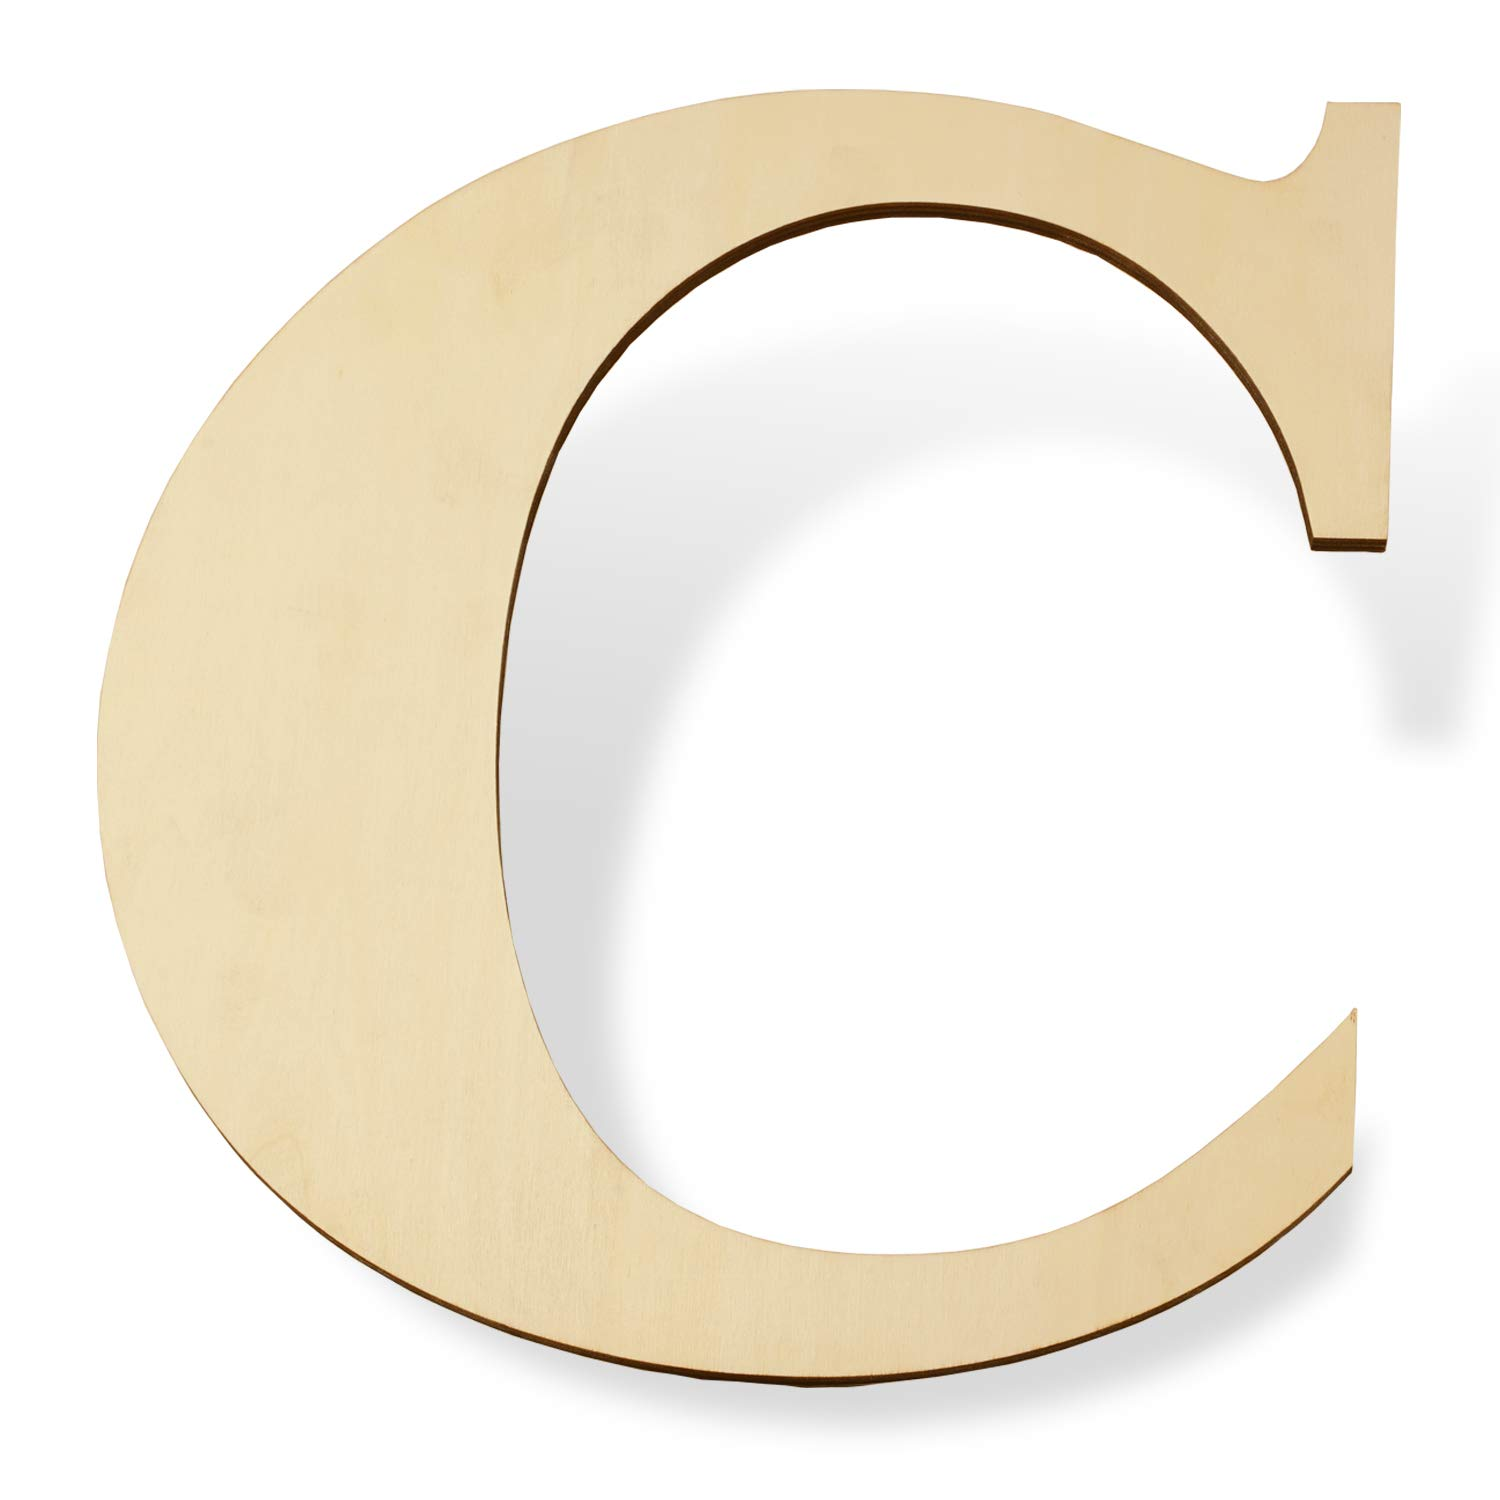 """12 inch Wooden Letters C - Blank Wood Board, Wood Letters for Walls Decor, Party, DIY Craft Projects (12"""" - 1/4"""" Thick, C)"""